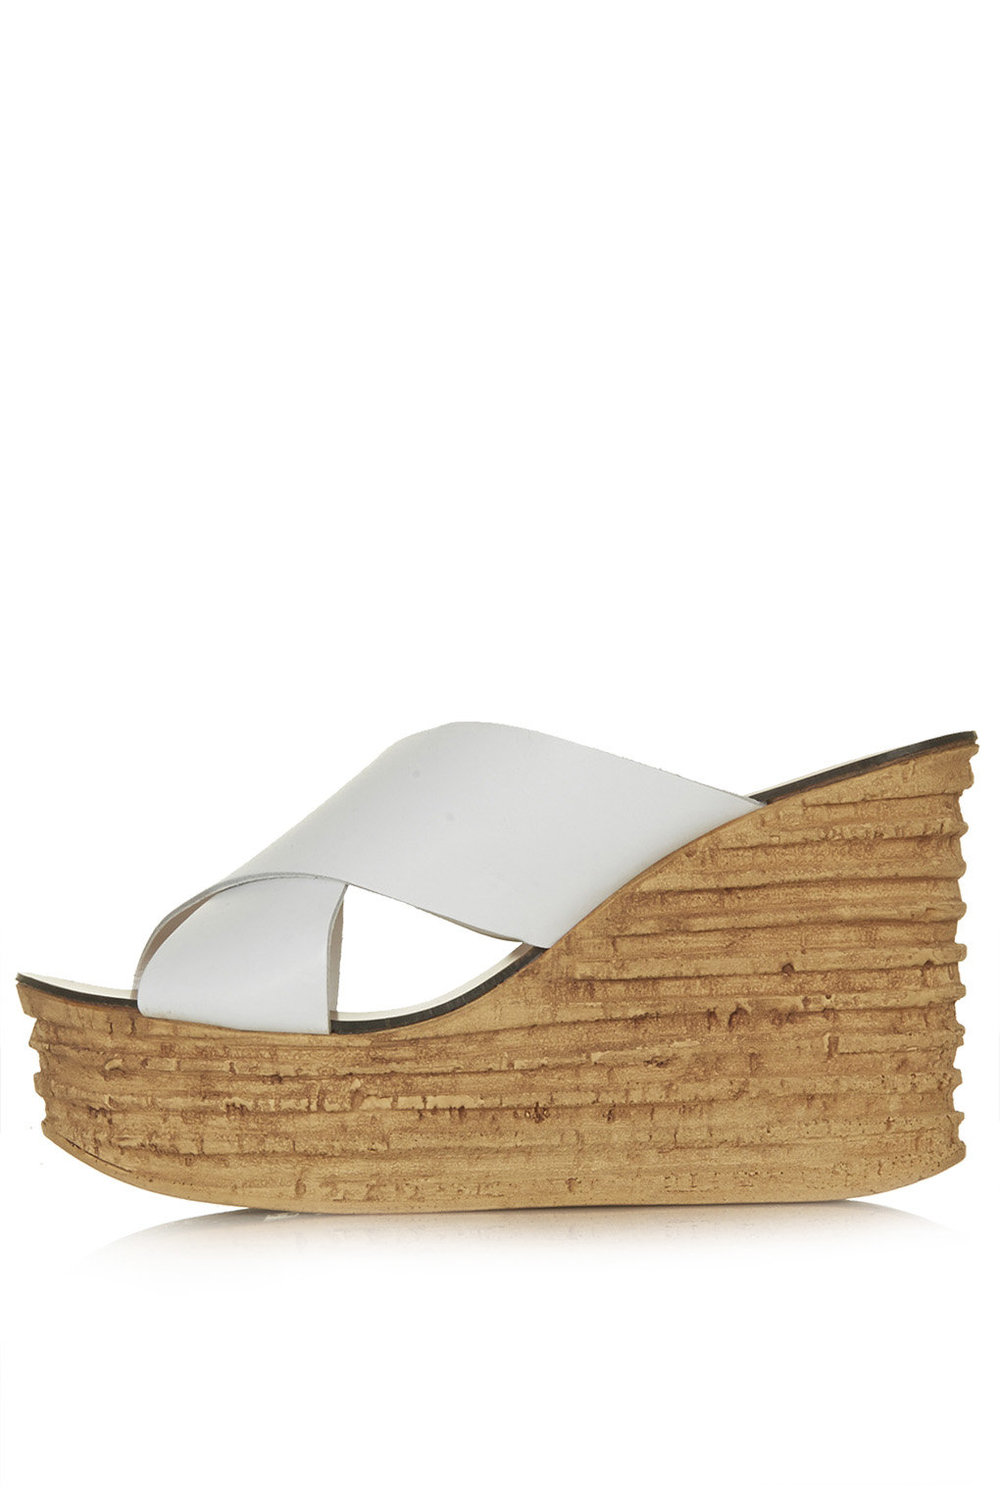 WORKIT Wedge Sandals. Topshop USA. $75.